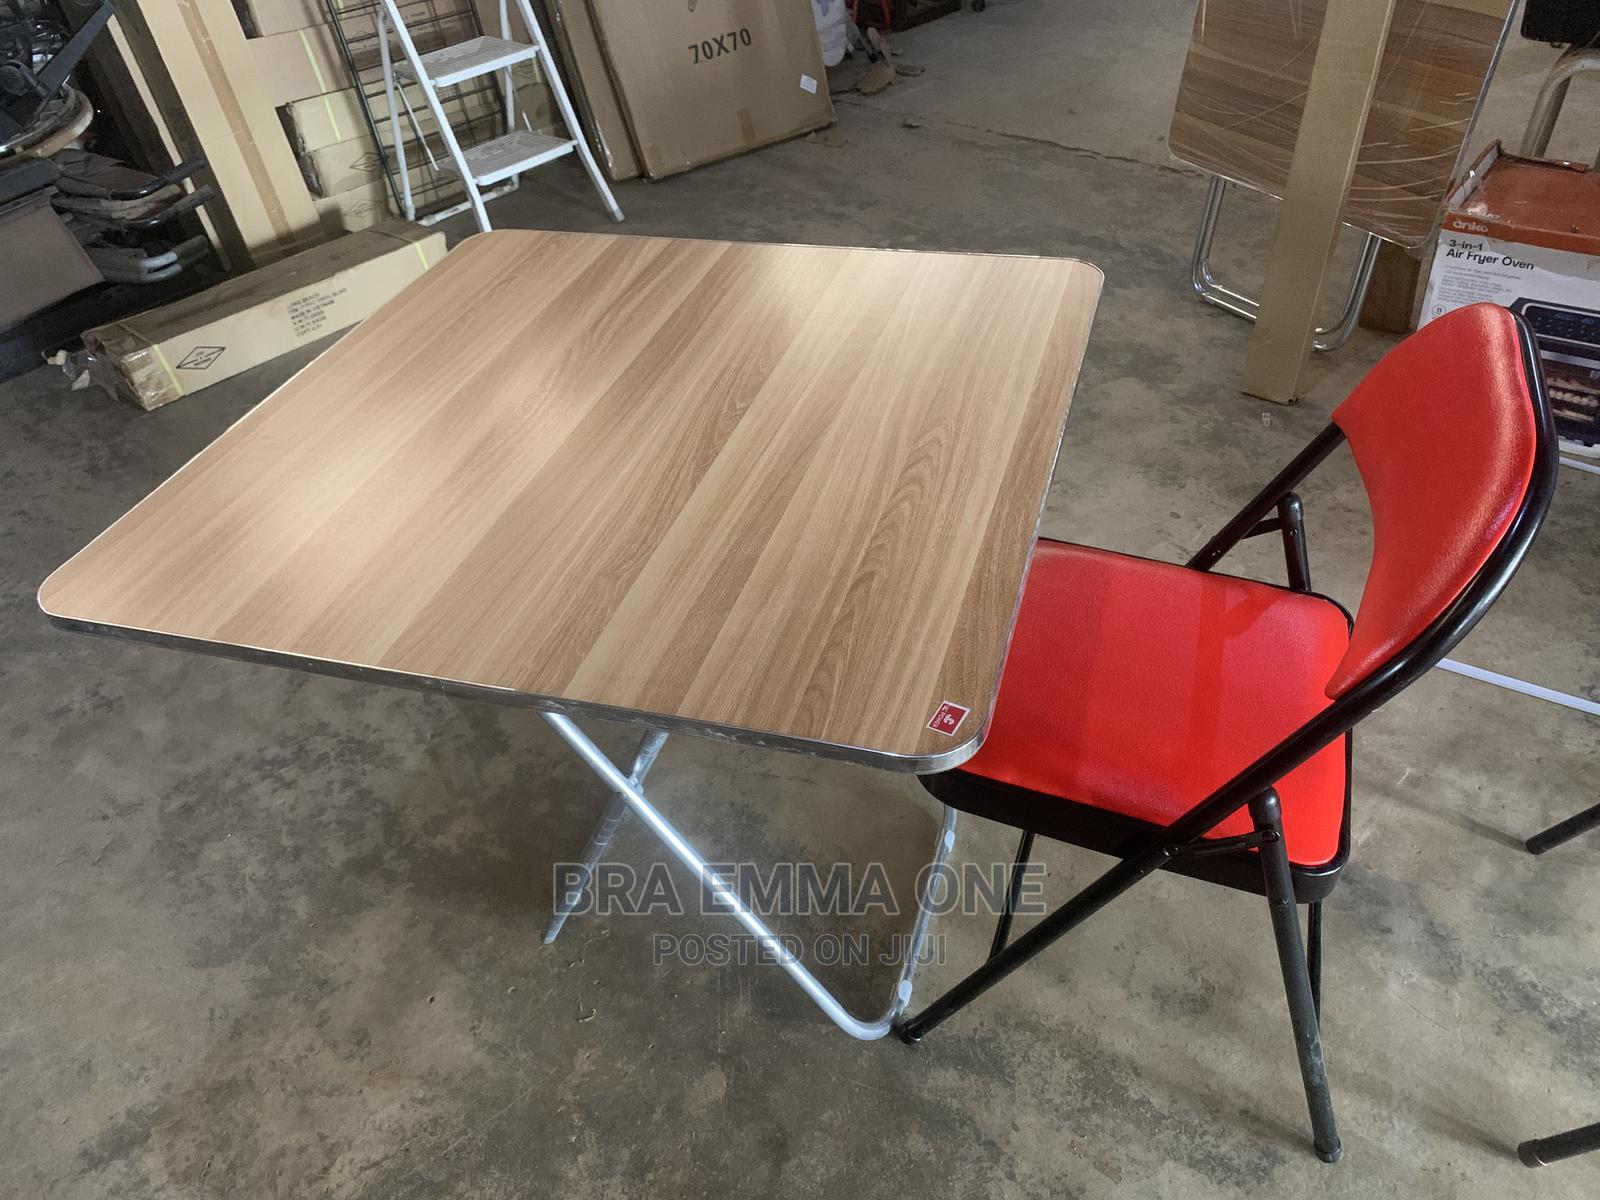 Foldable Table And